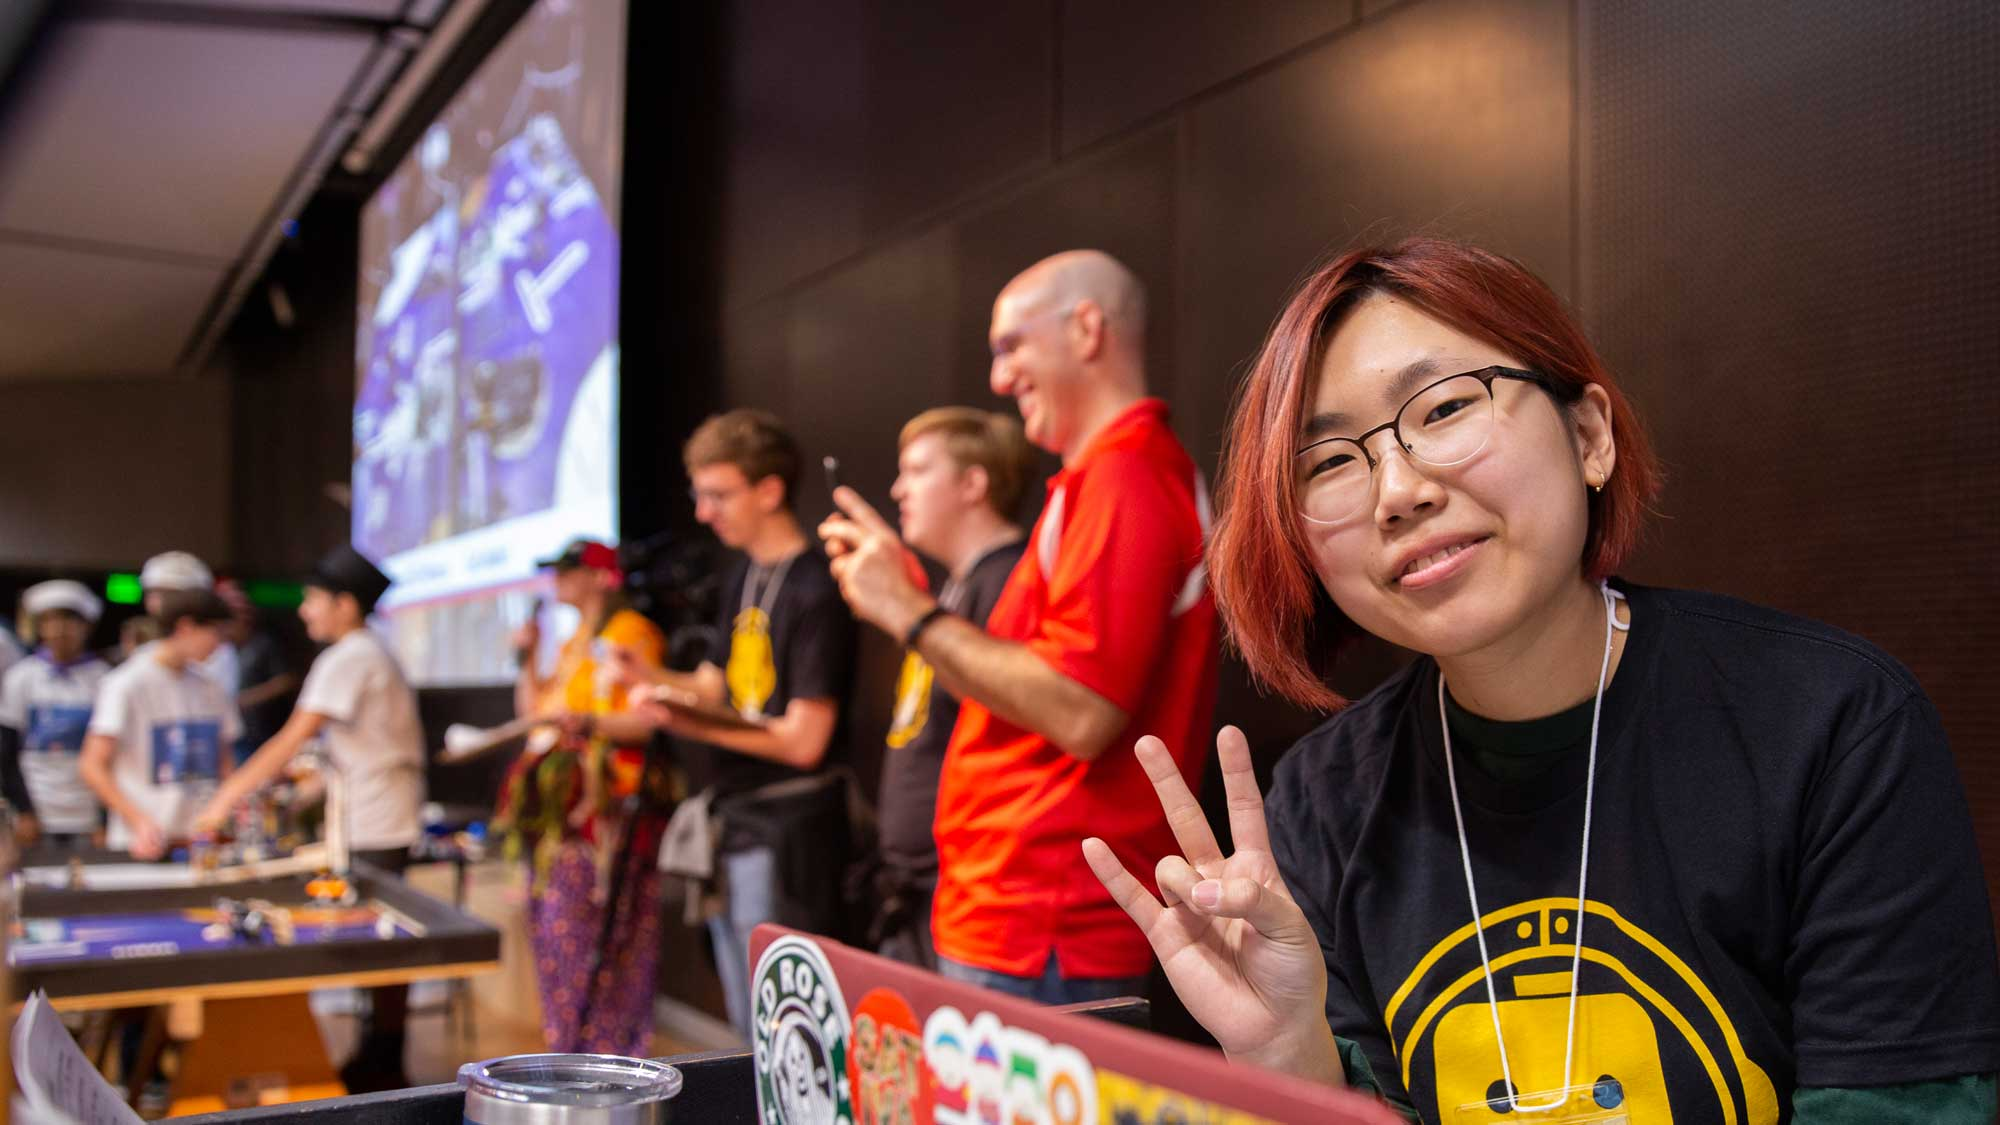 A FIRST LEGO League volunteer makes the ASU pitchfork gesture for the camera with the FLL championship happening in the background